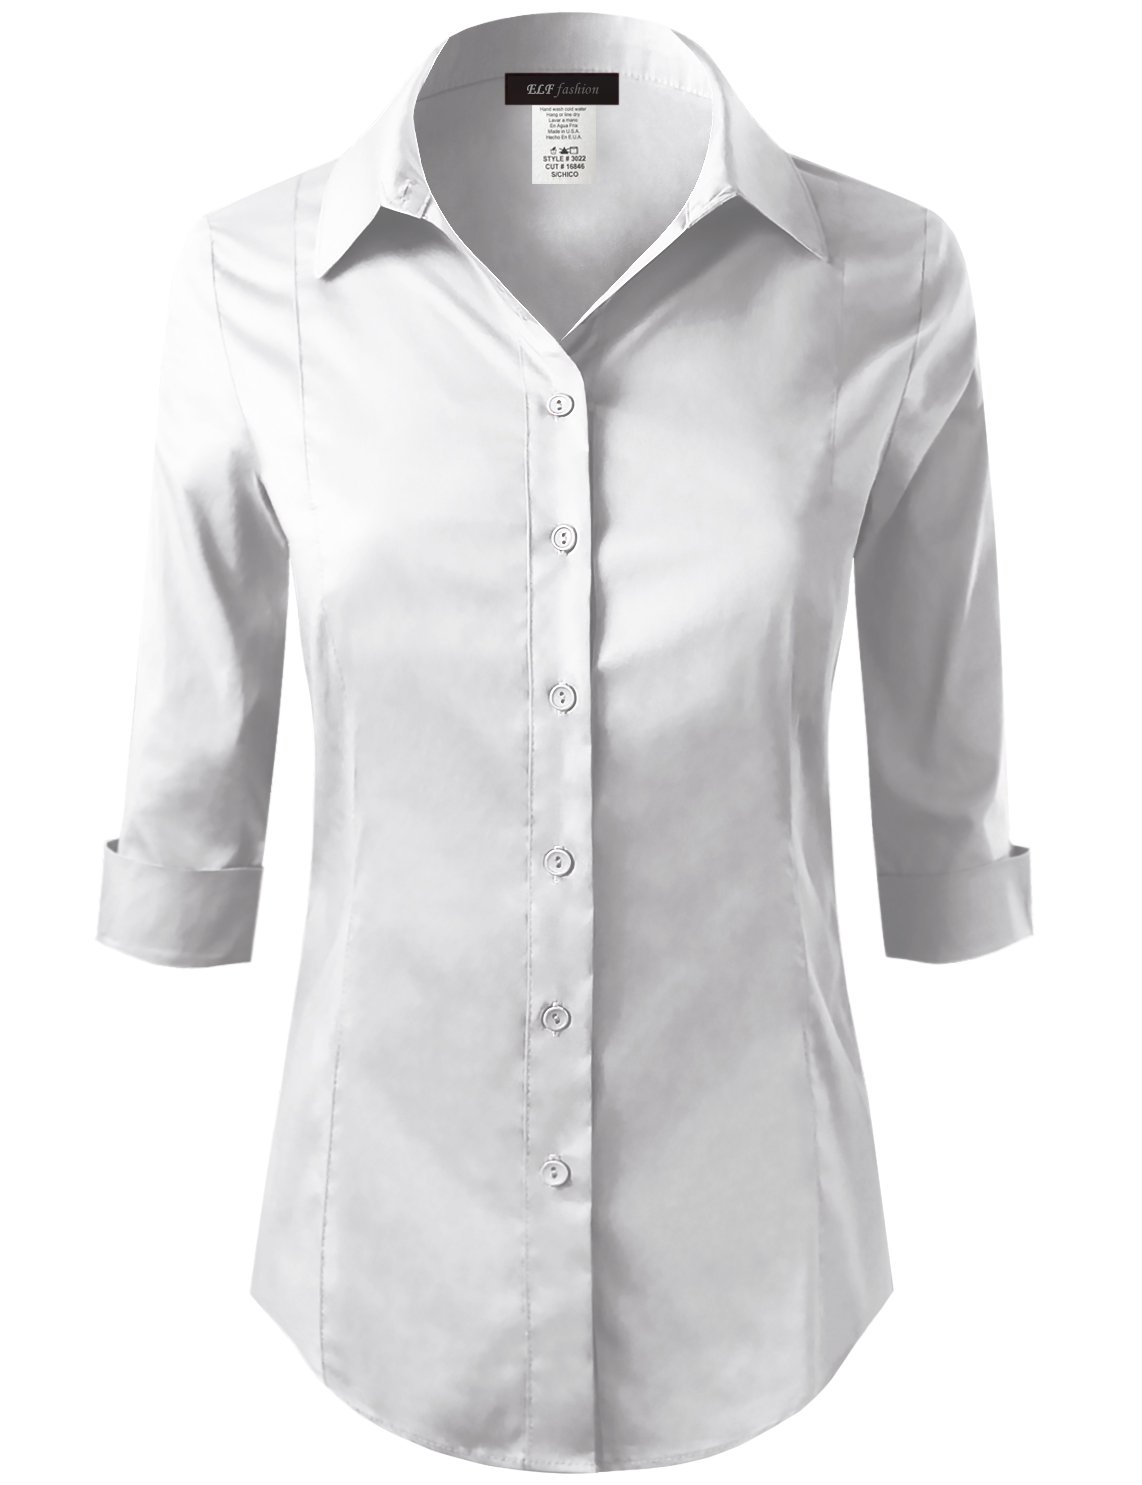 ELF FASHION Roll up 3/4 Sleeve Button Down Shirt for Womens Made in USA (Size S~3XL) White 3XL